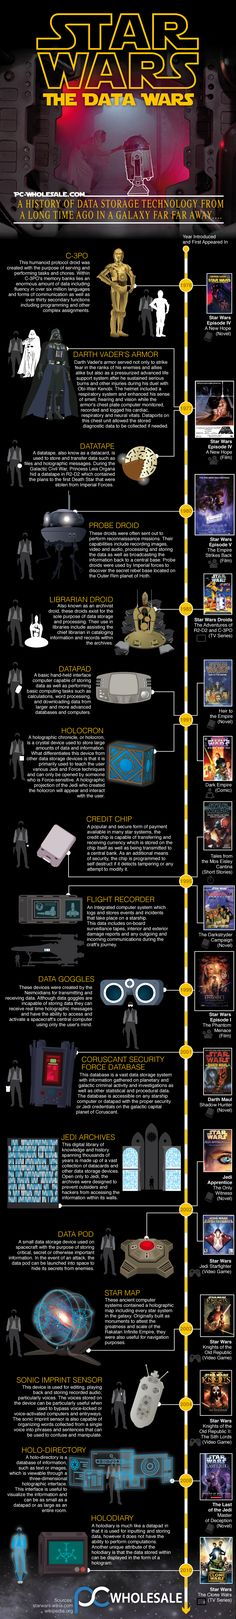 Star Wars: The Data Wars #infographic #StarWars #Technology